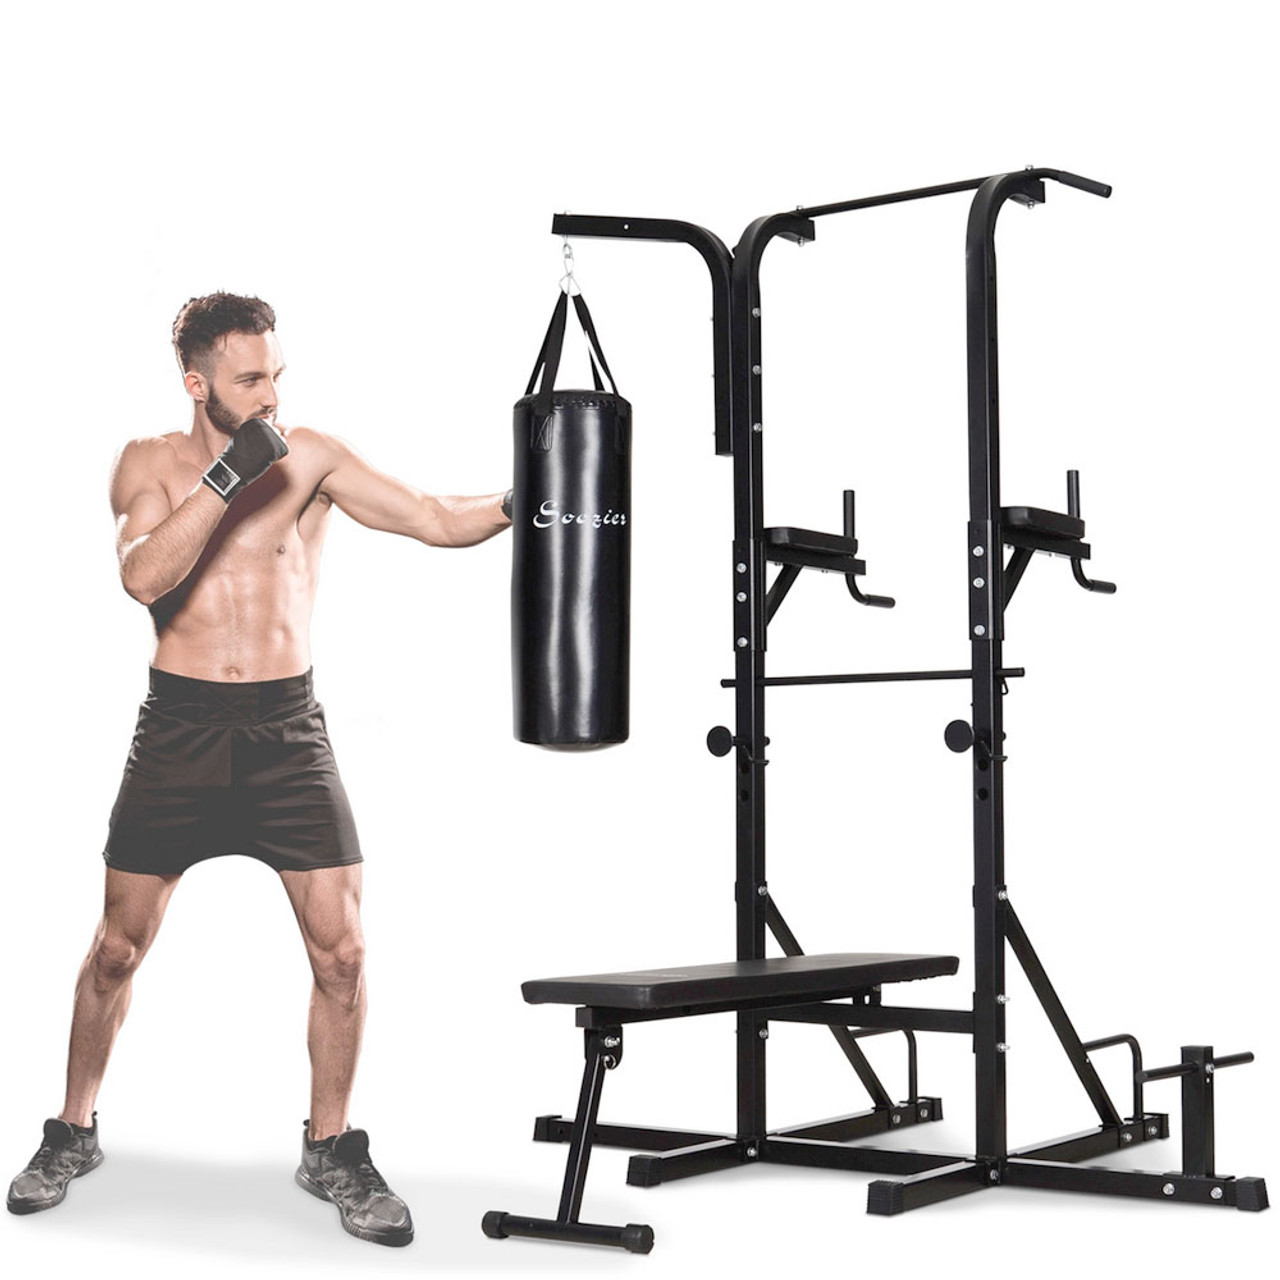 Soozier 86' Full Body Power Tower Home Gym with Punching Bag